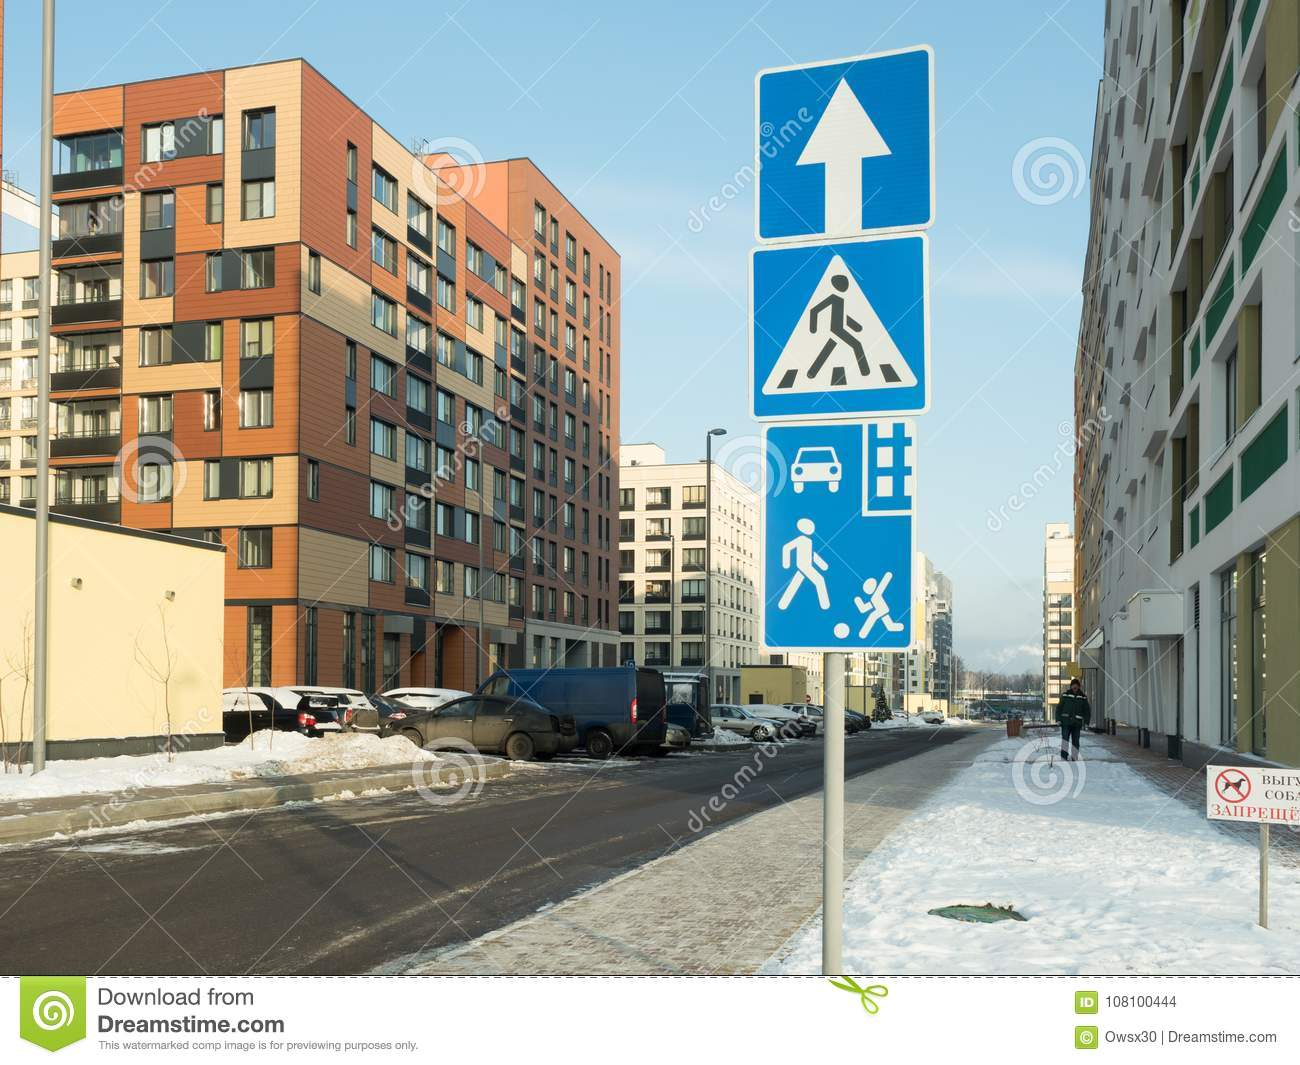 Traffic signs on the street of a residential area